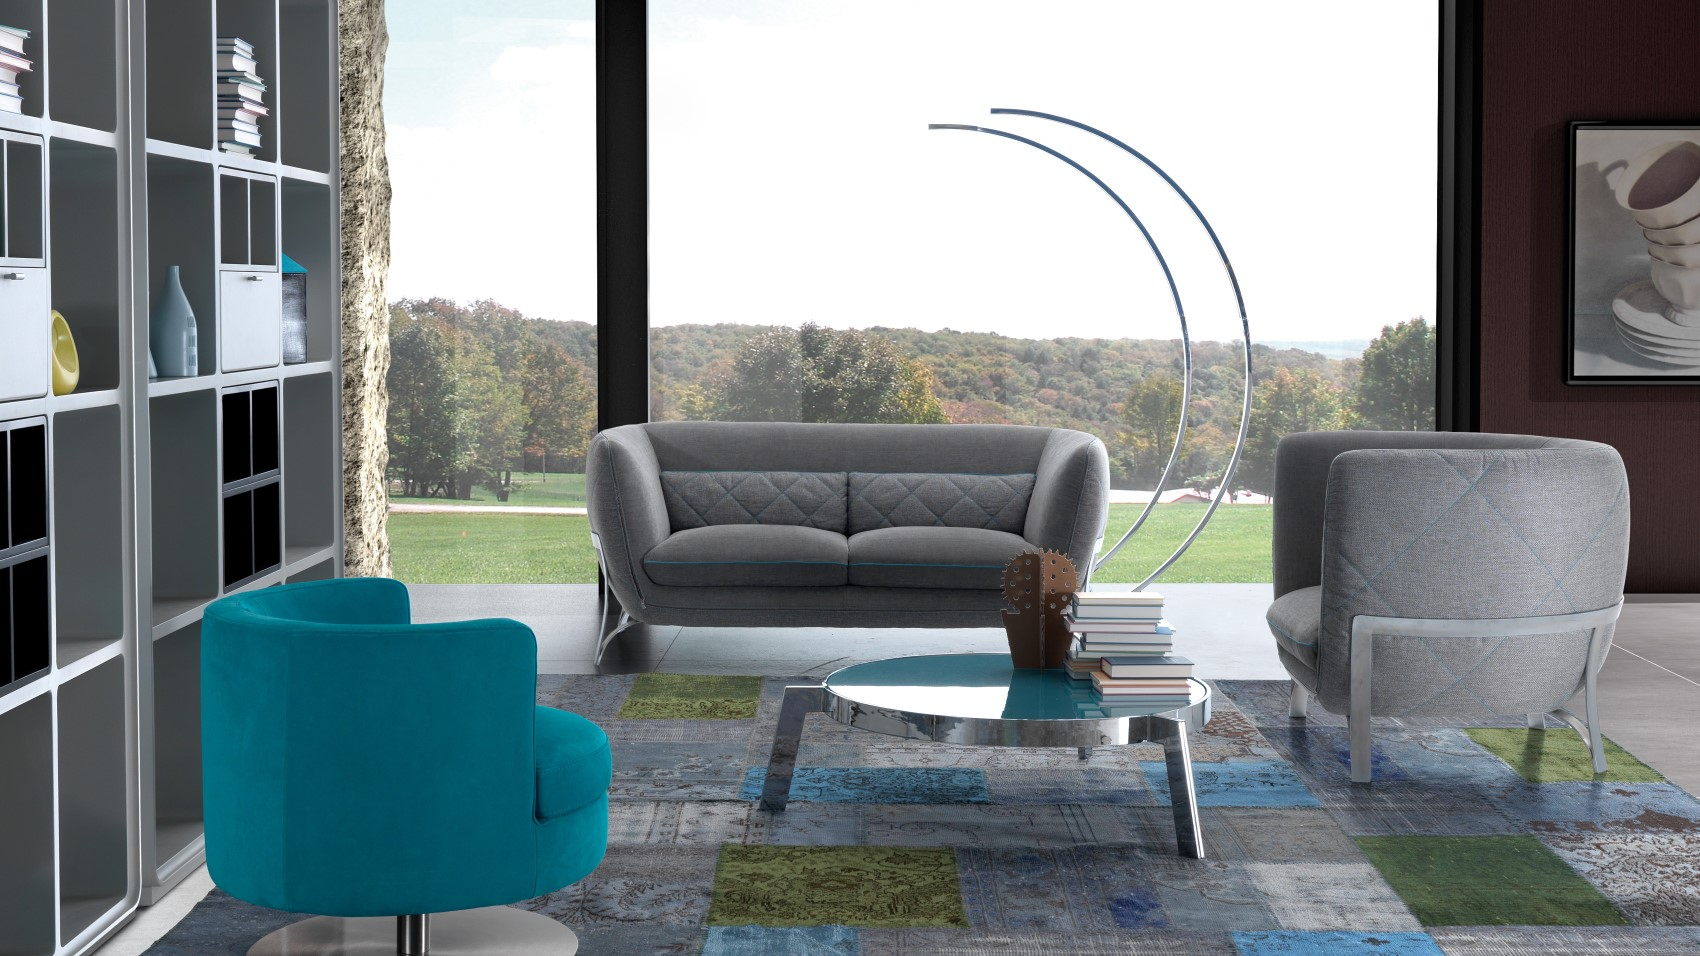 Sklar furnishings is boca ratons contemporary furniture experts